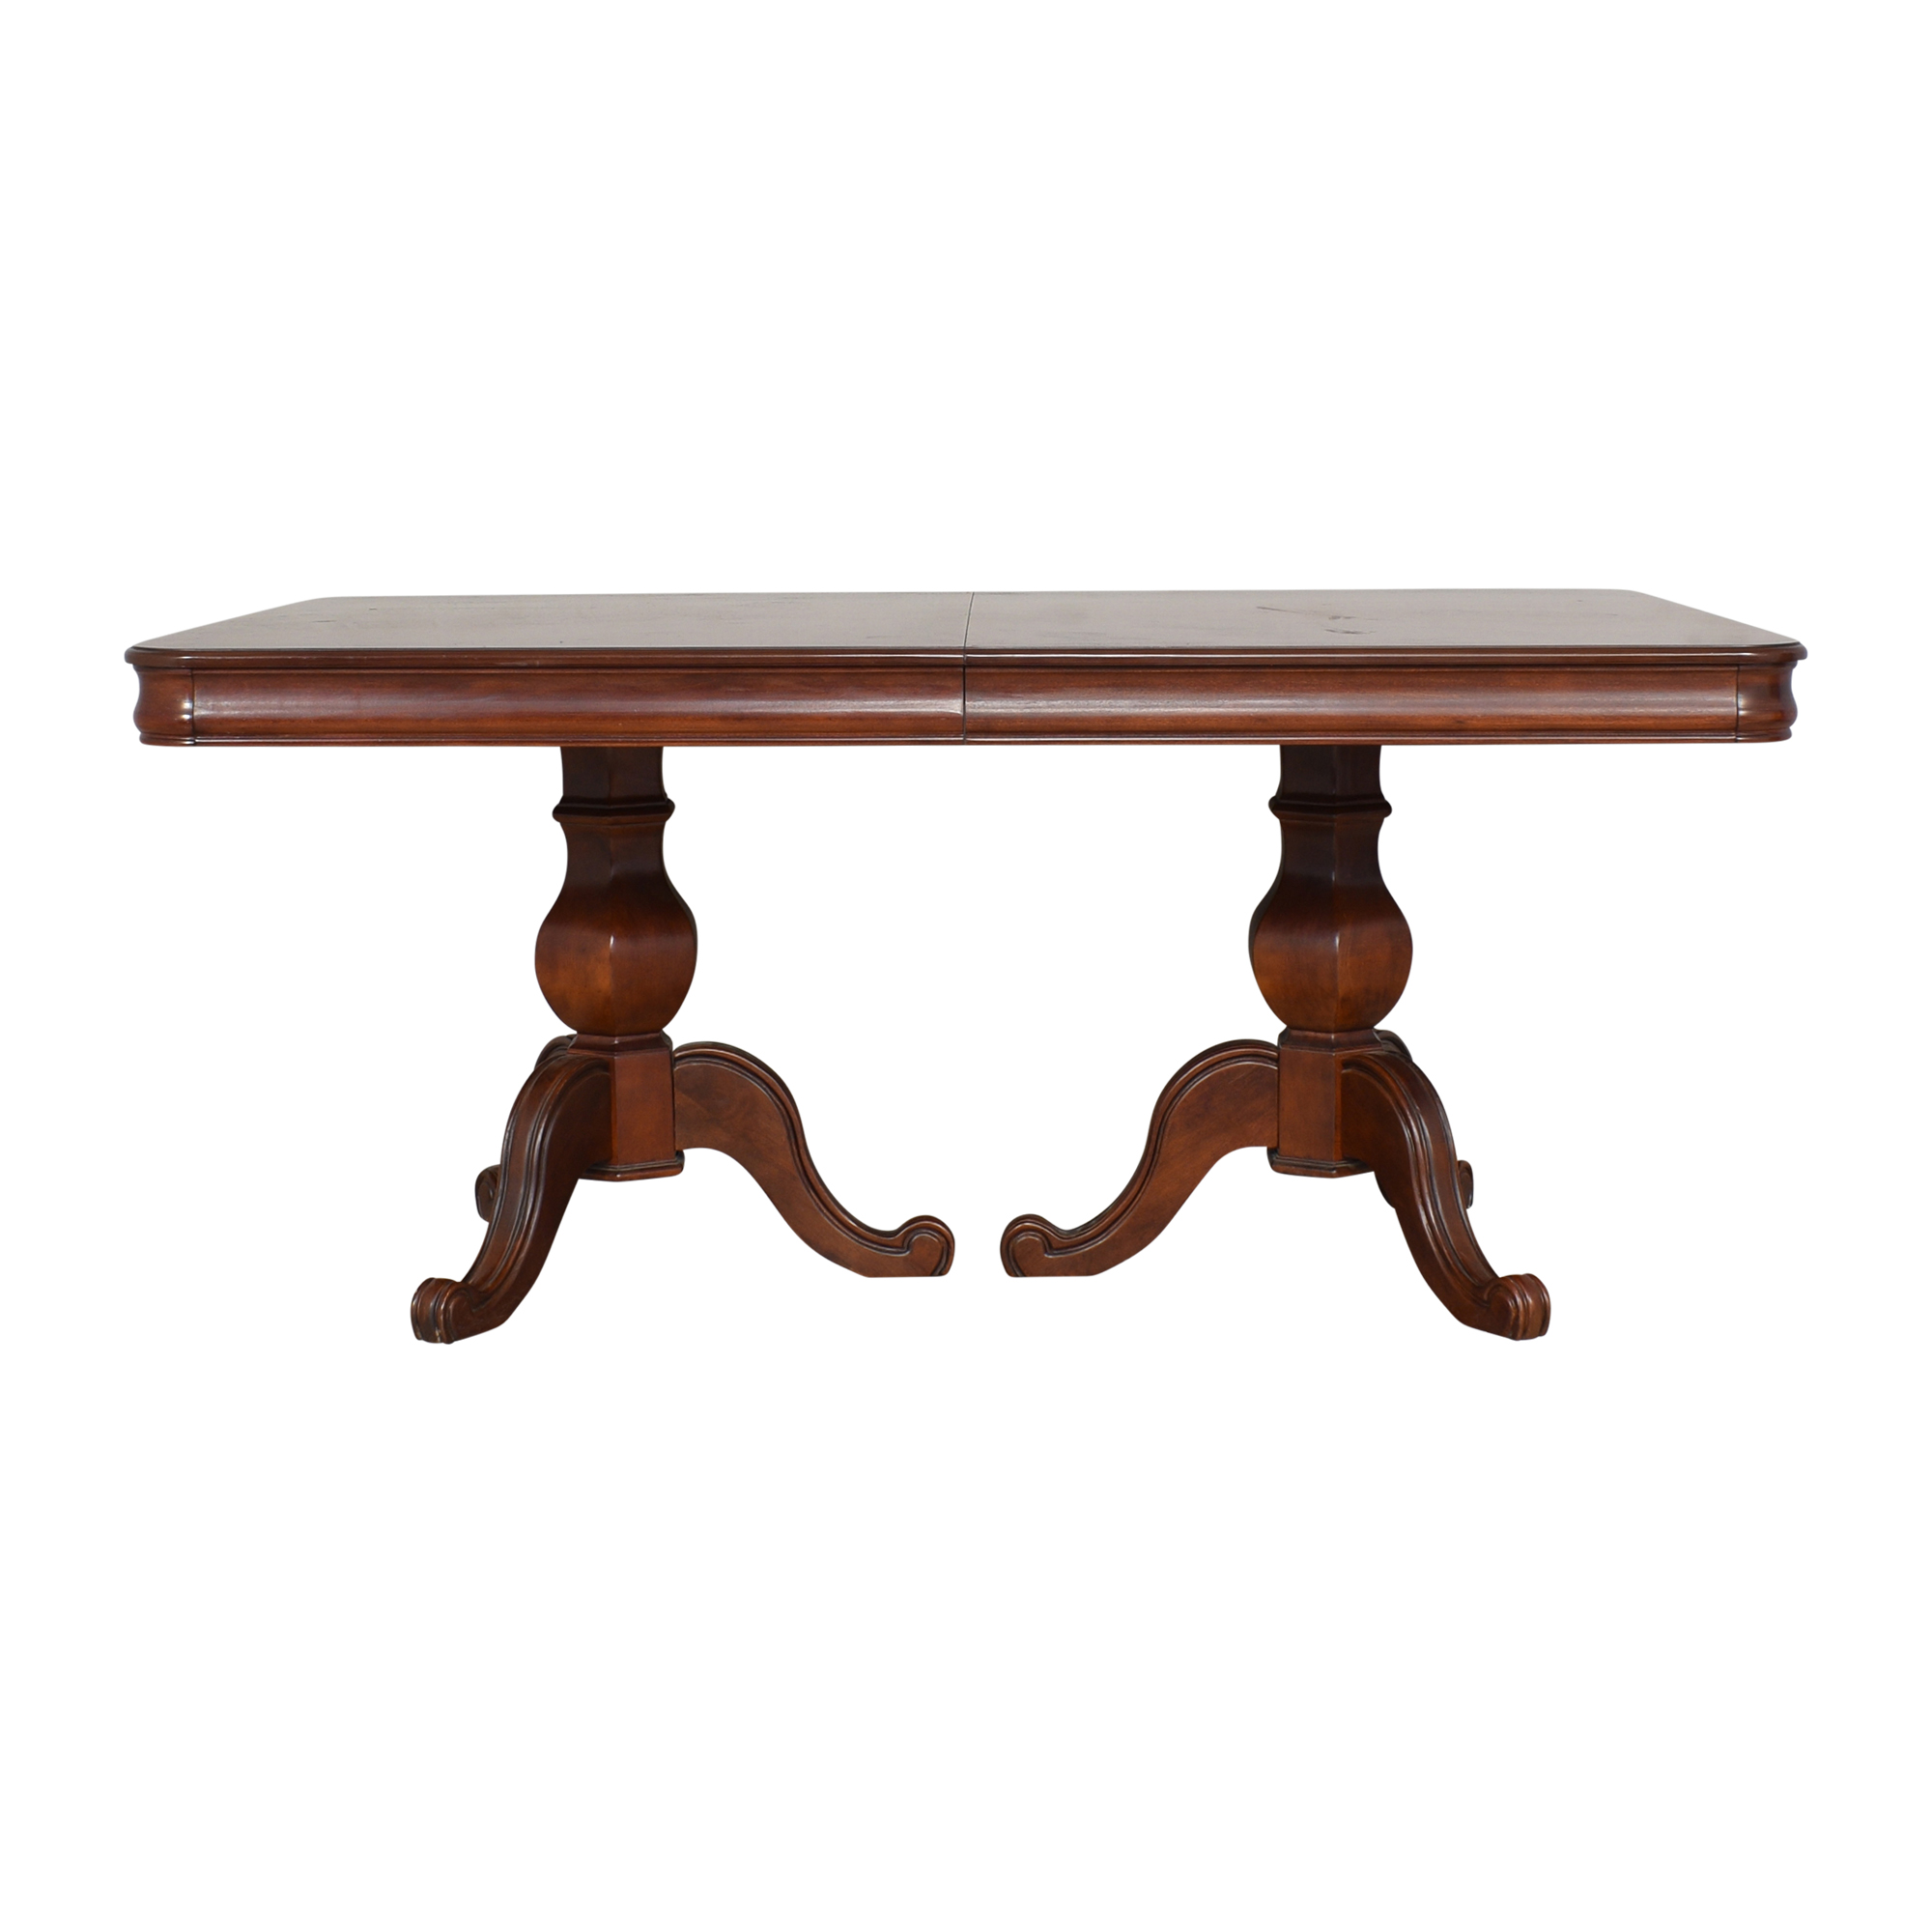 Raymour & Flanigan Raymour & Flanigan Extendable Dining Table Dinner Tables